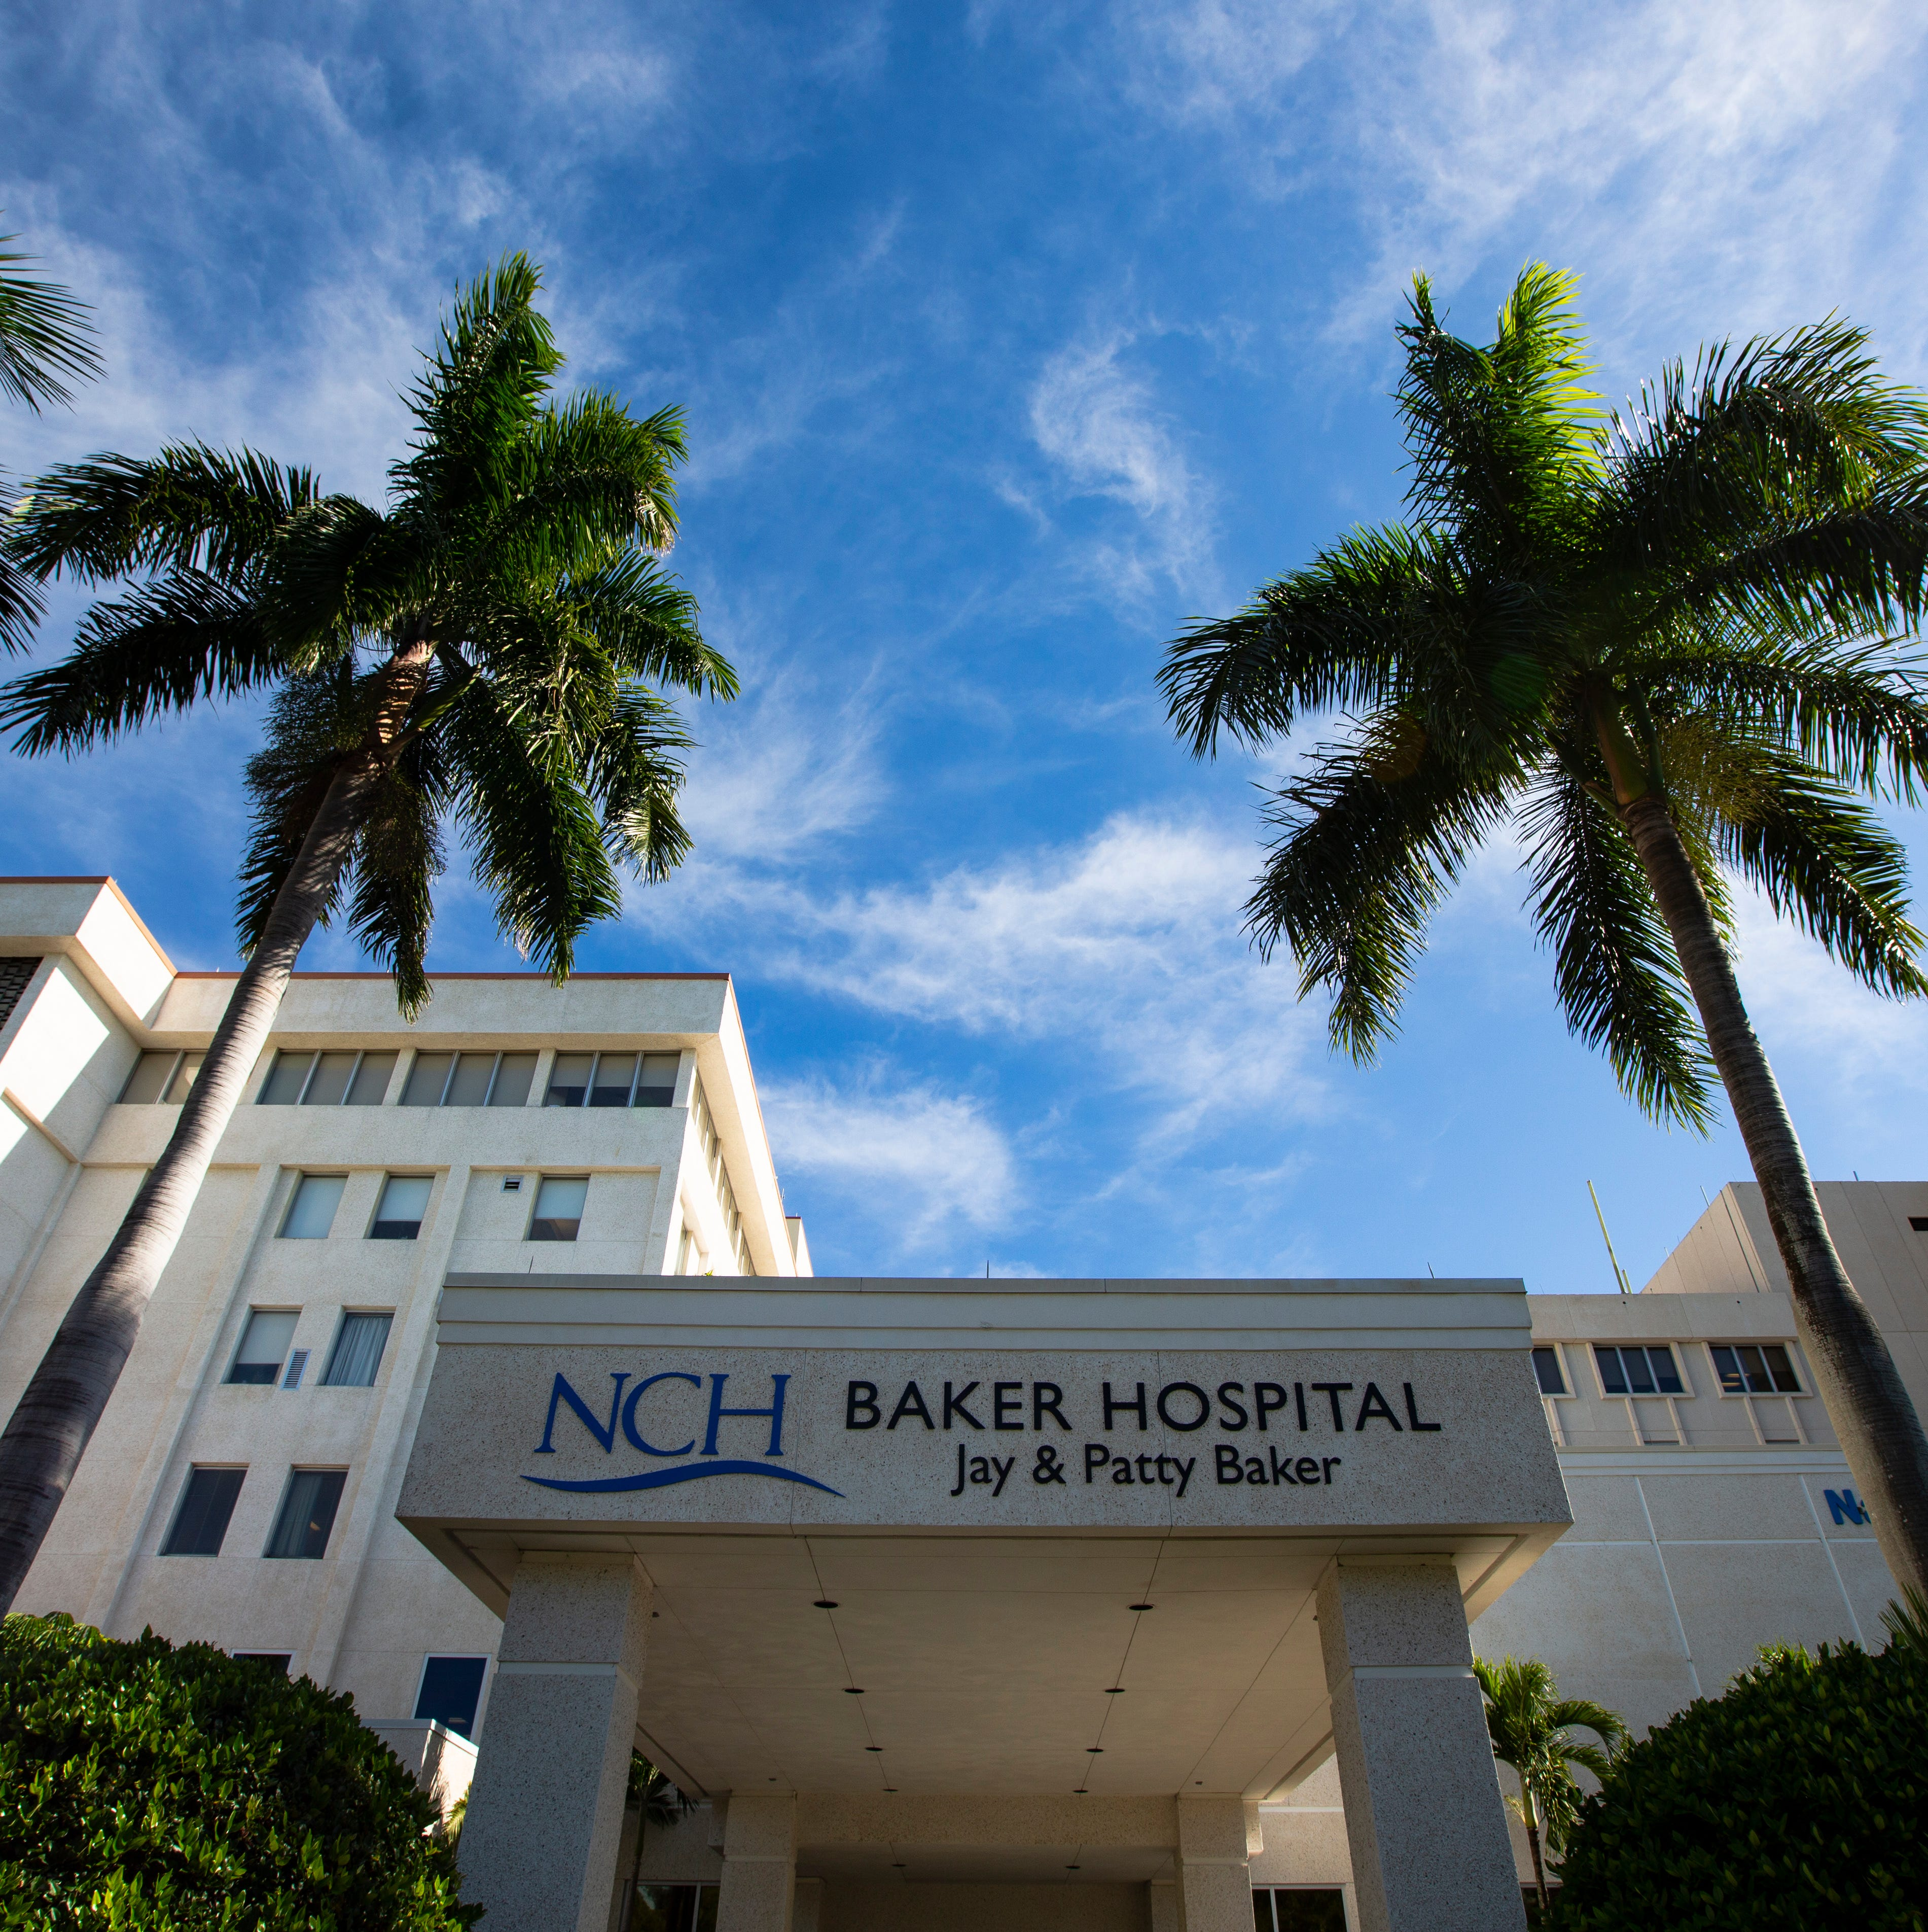 NCH Baker Hospital Downtown ranks 11th best in state, U.S. News & World Report says